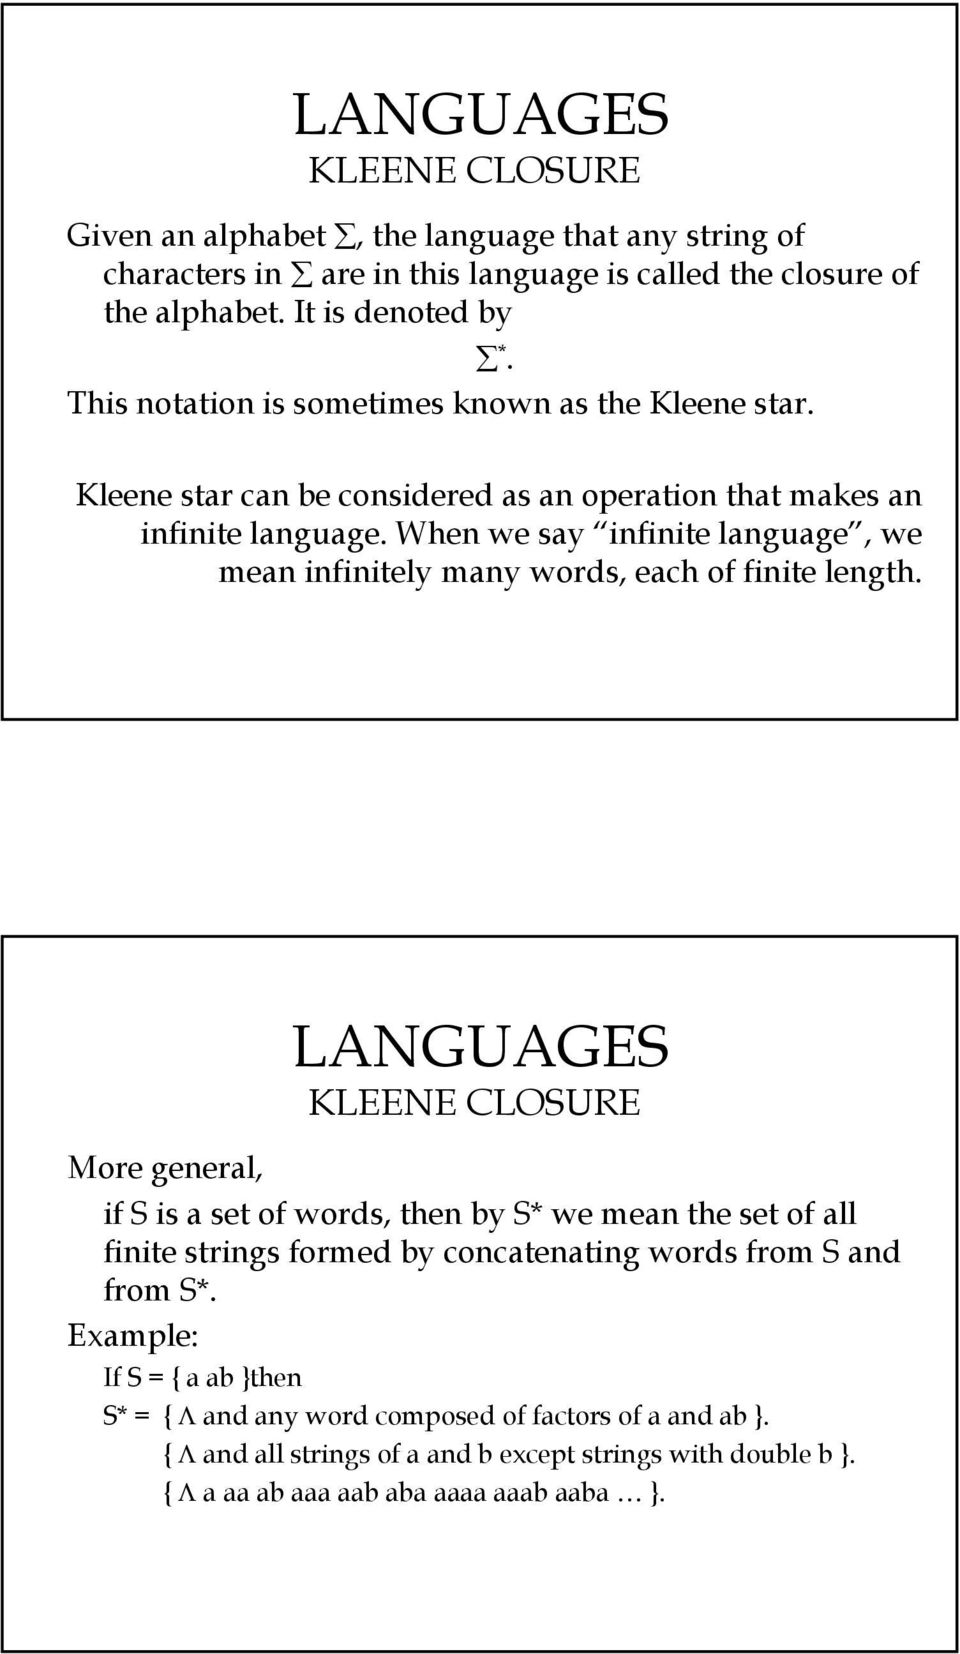 When we say infinite language, we mean infinitely many words, each of finite length.